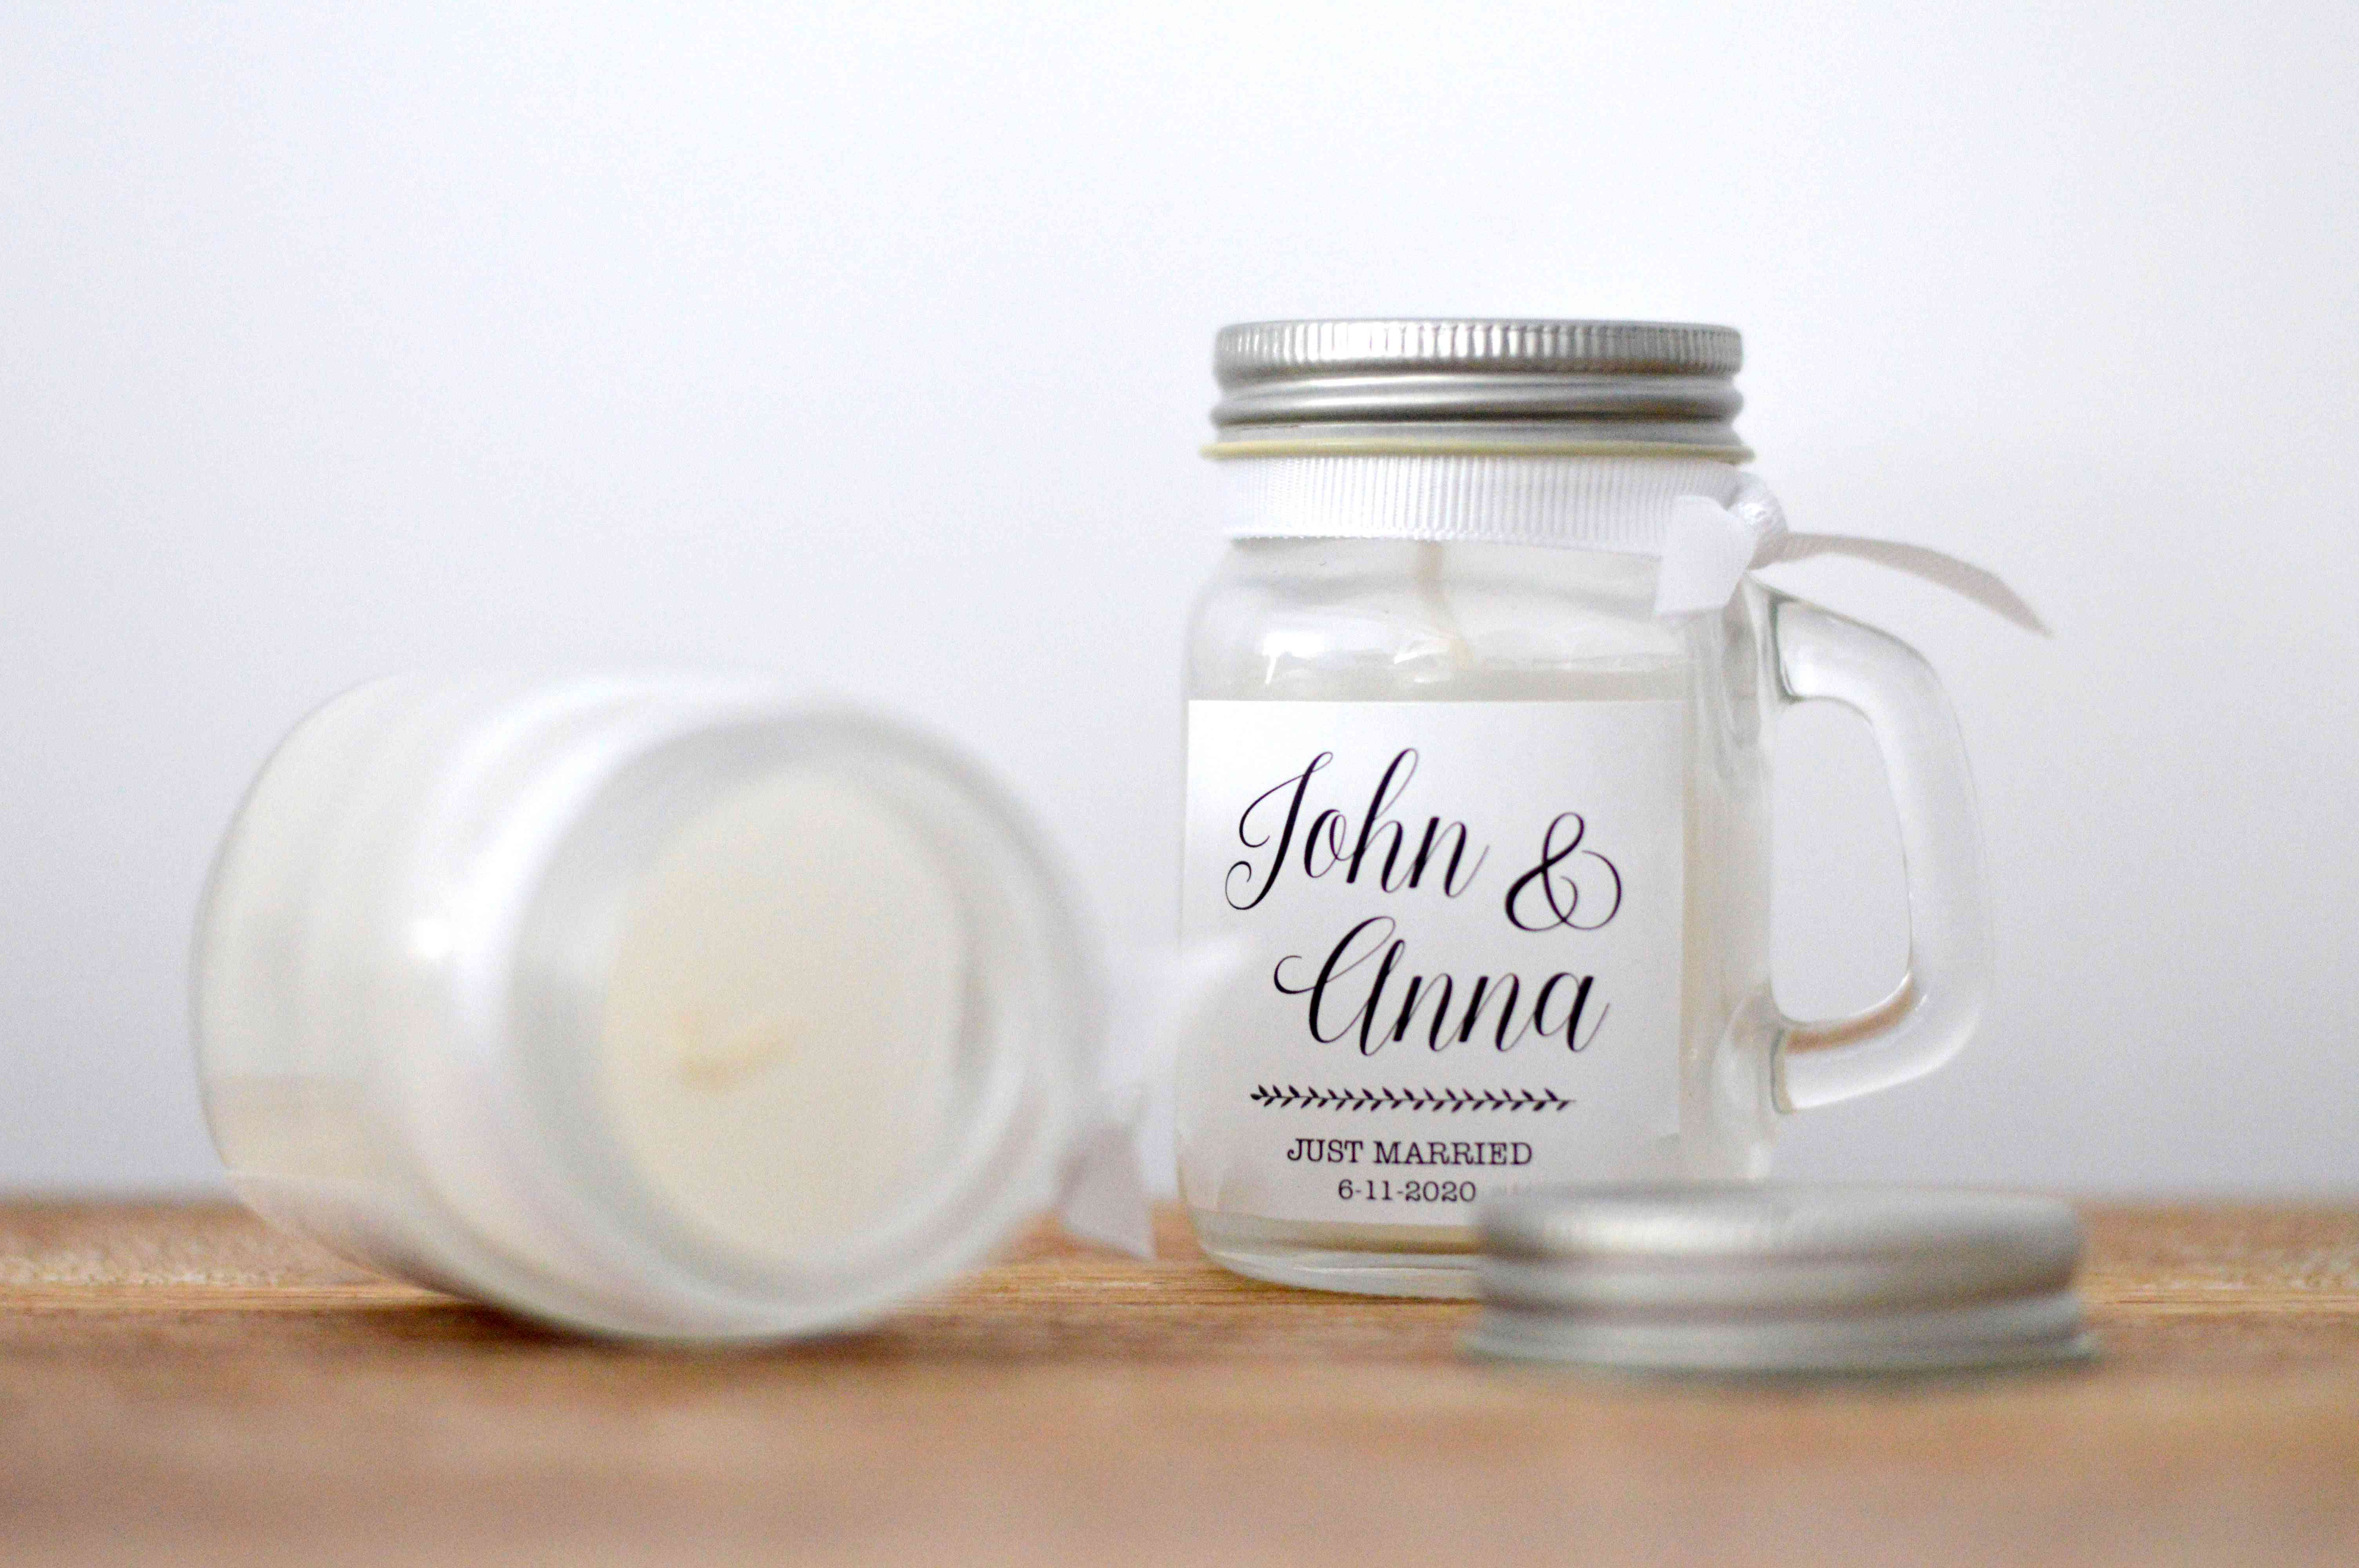 7 Pretty Candle Wedding Favors That Look as Enticing as They